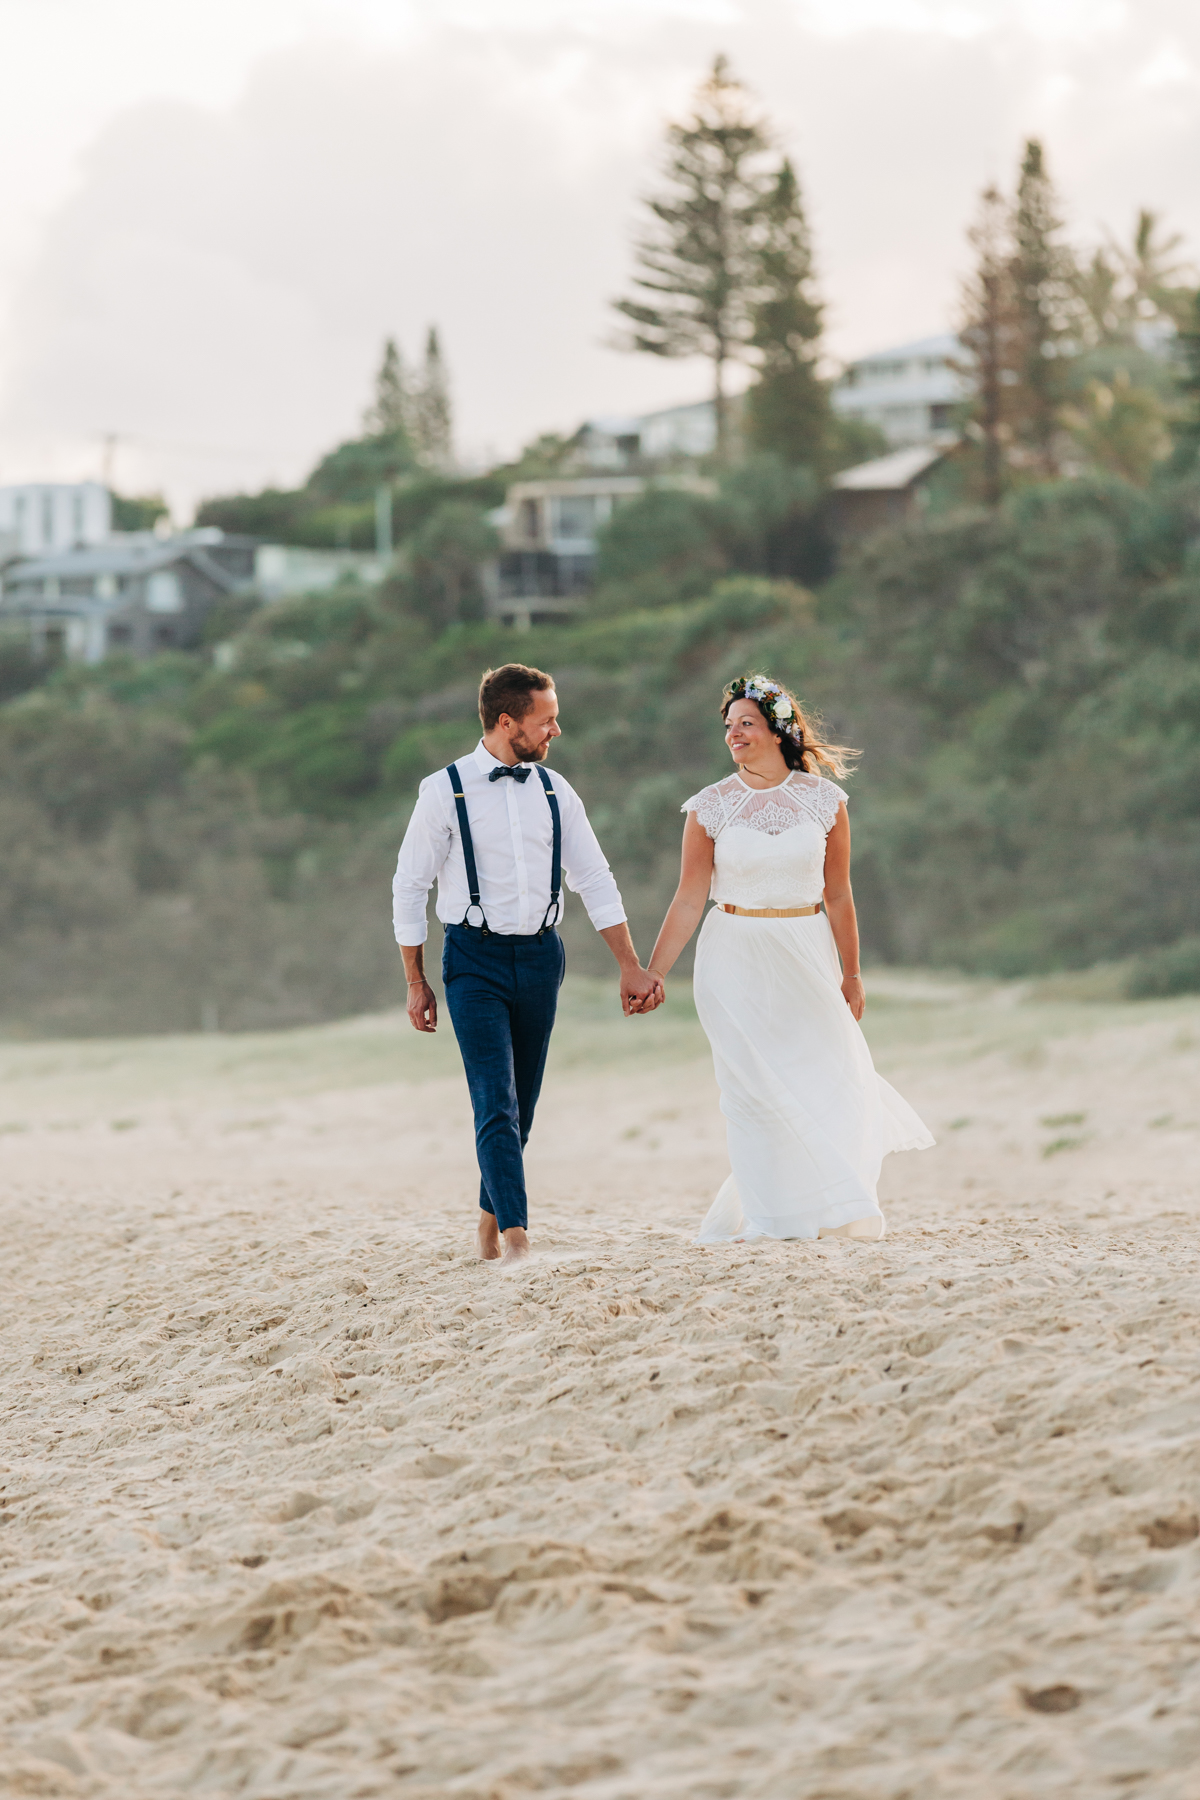 Sunshine-Beach-Wedding-Photographers-Lindy-Yewen 161.jpg